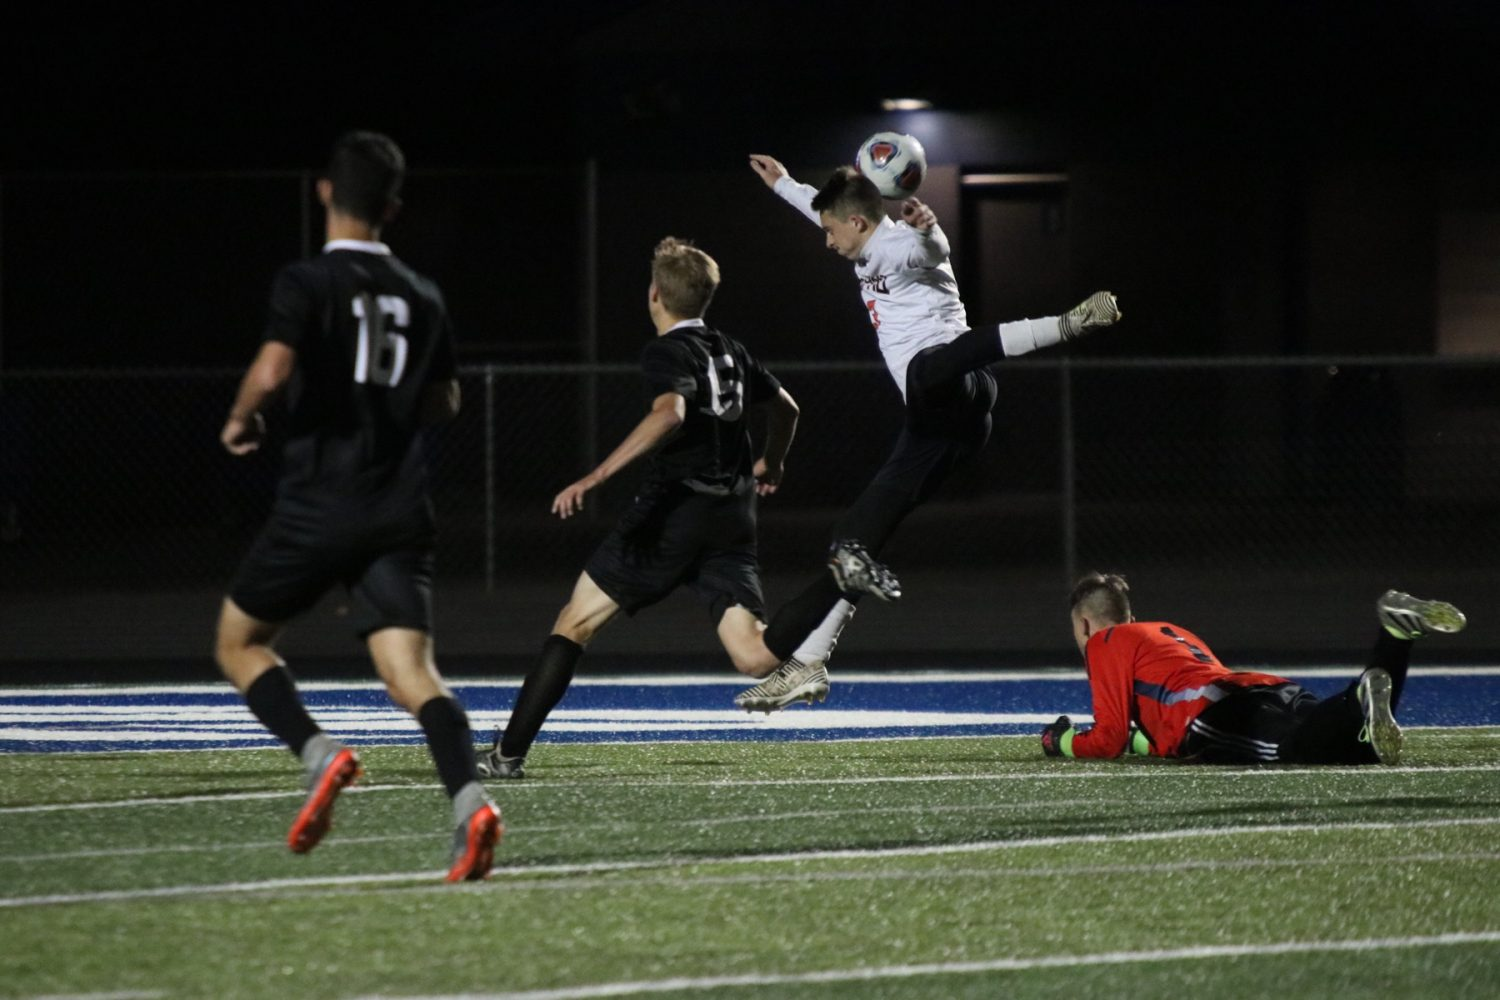 Photos: District Soccer Semifinal Vs Willard